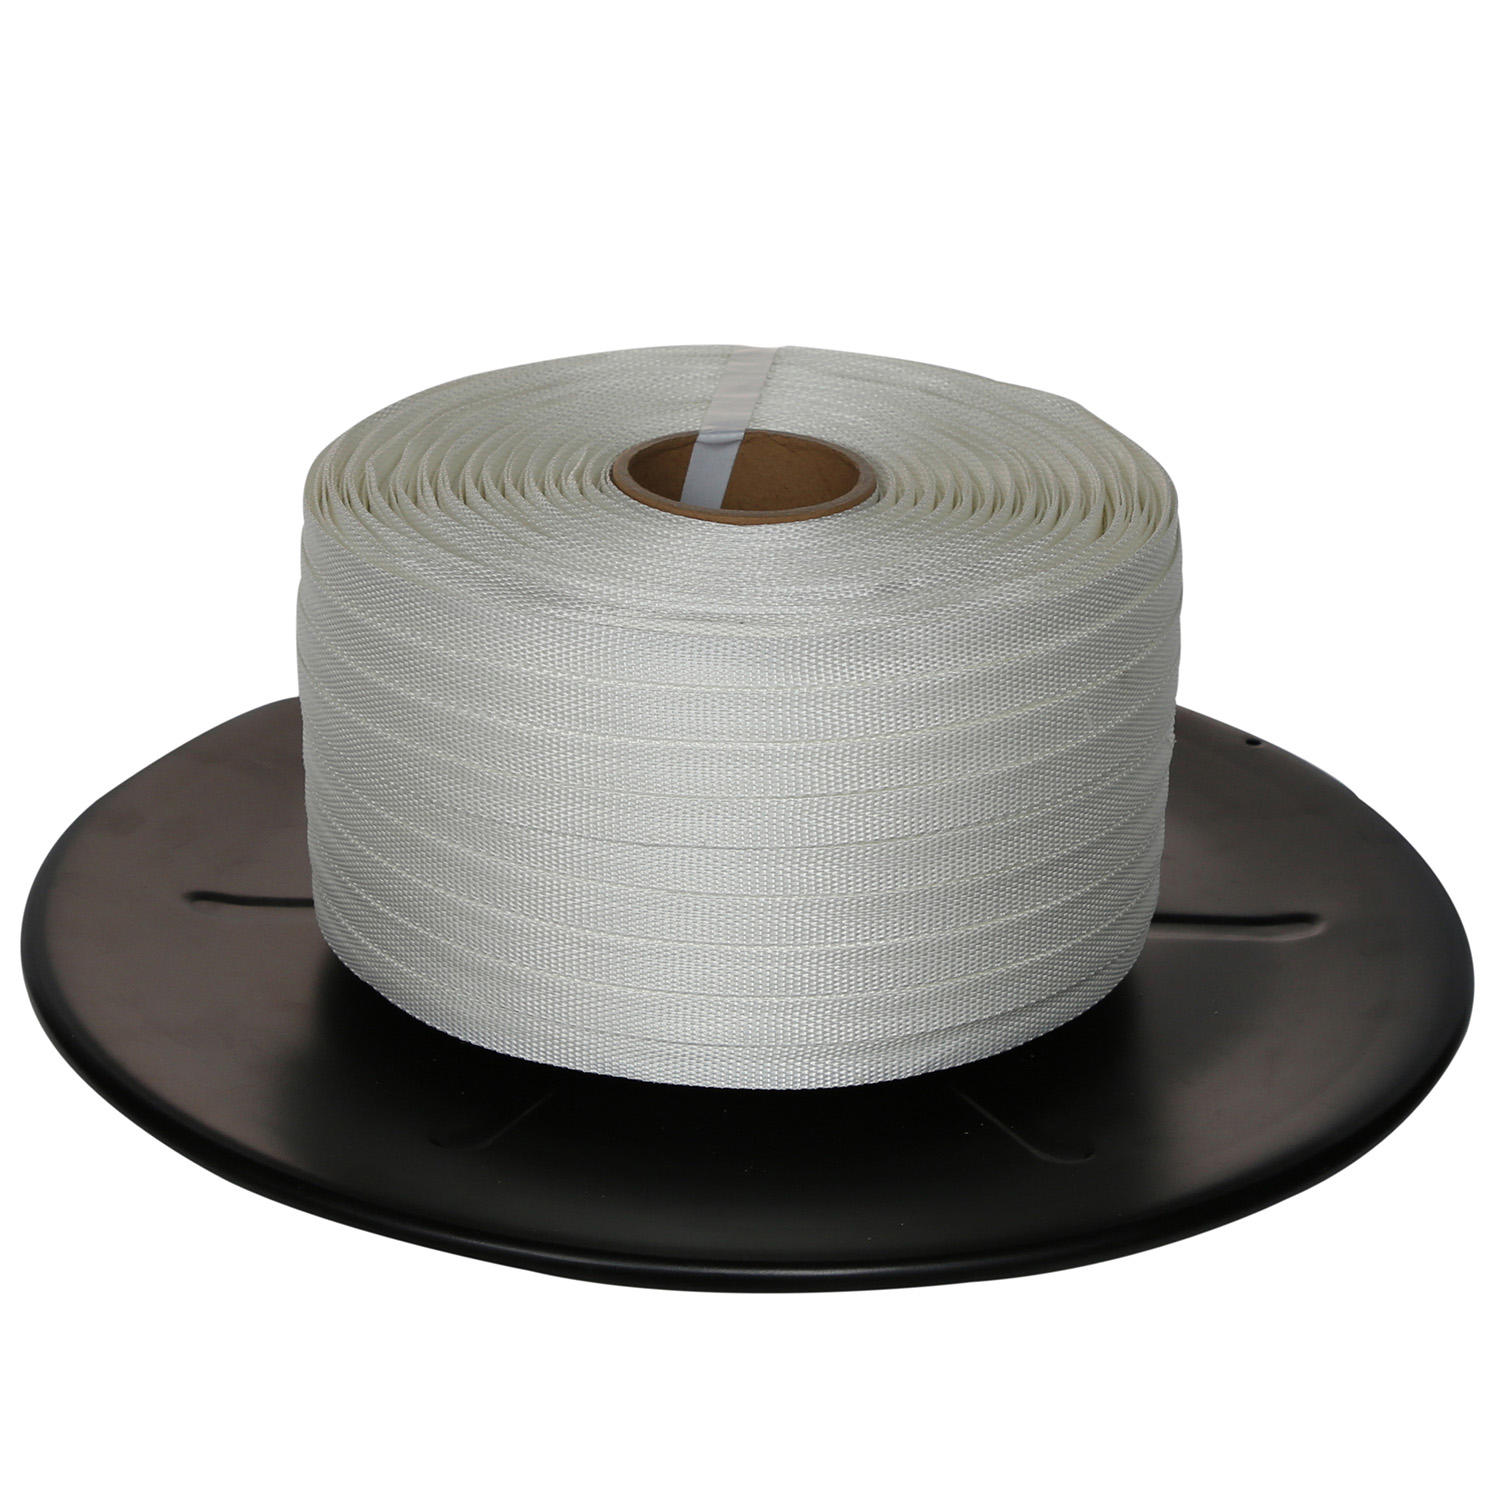 Hot Sale Woven Polyester Cord Strap Manufacturer from Dongguan China